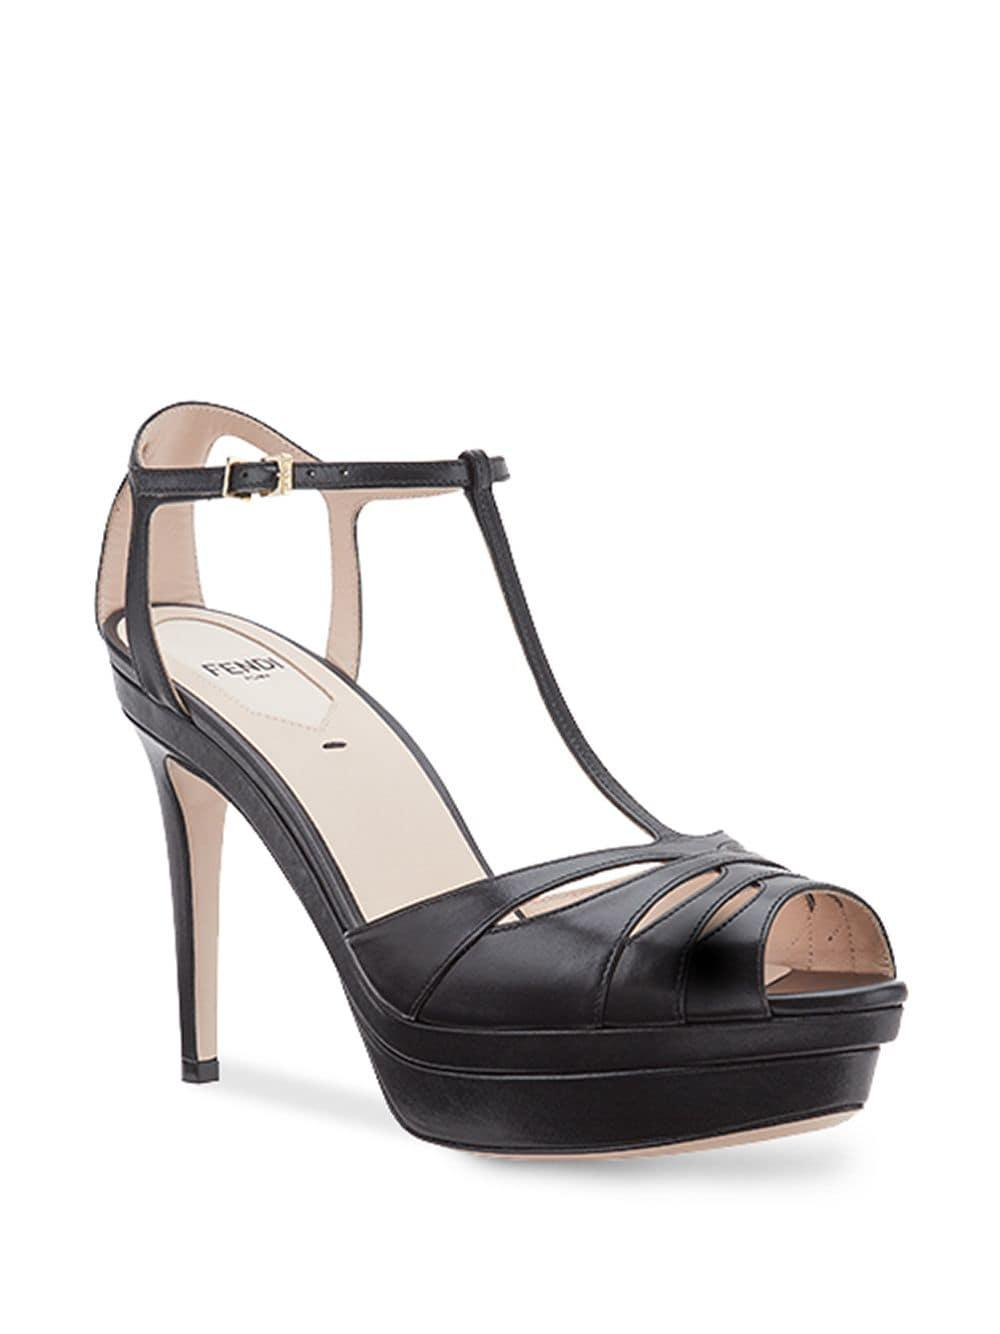 07ef32ce18e Lyst - Fendi T-bar Heeled Sandals in Black